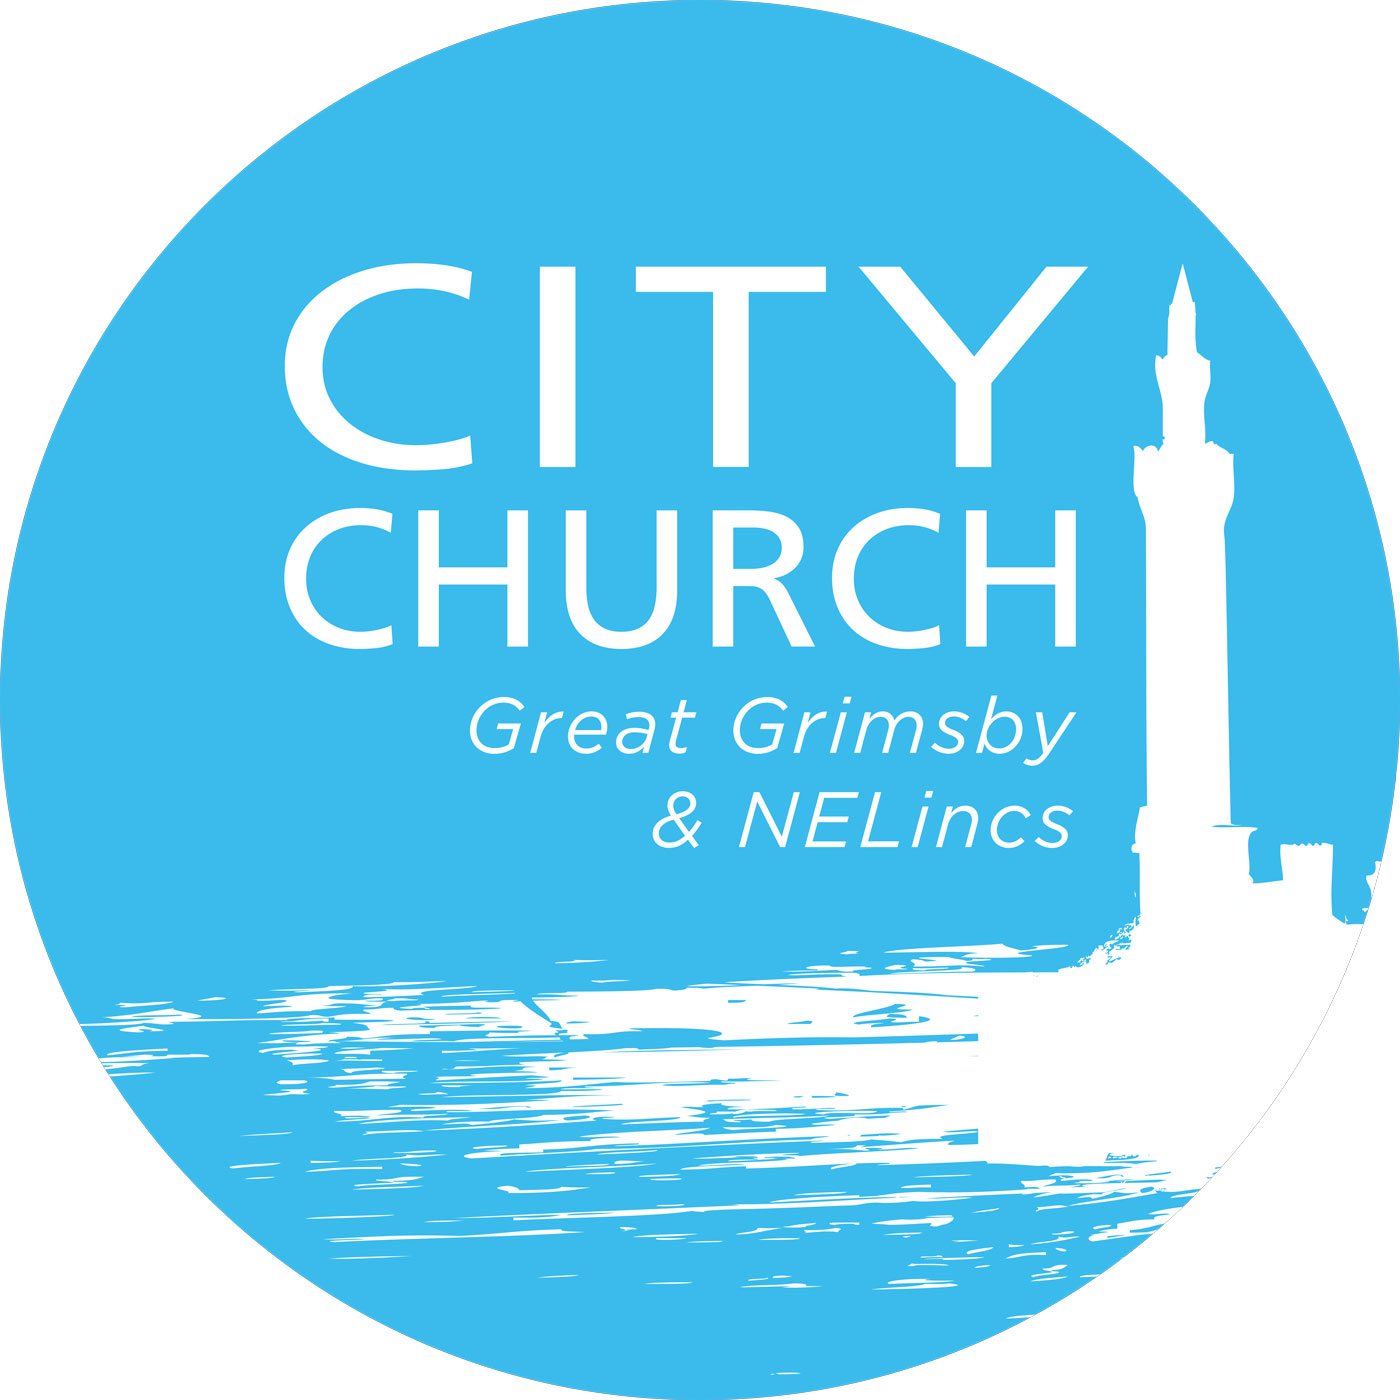 City Church (Great Grimsby & NELincs)